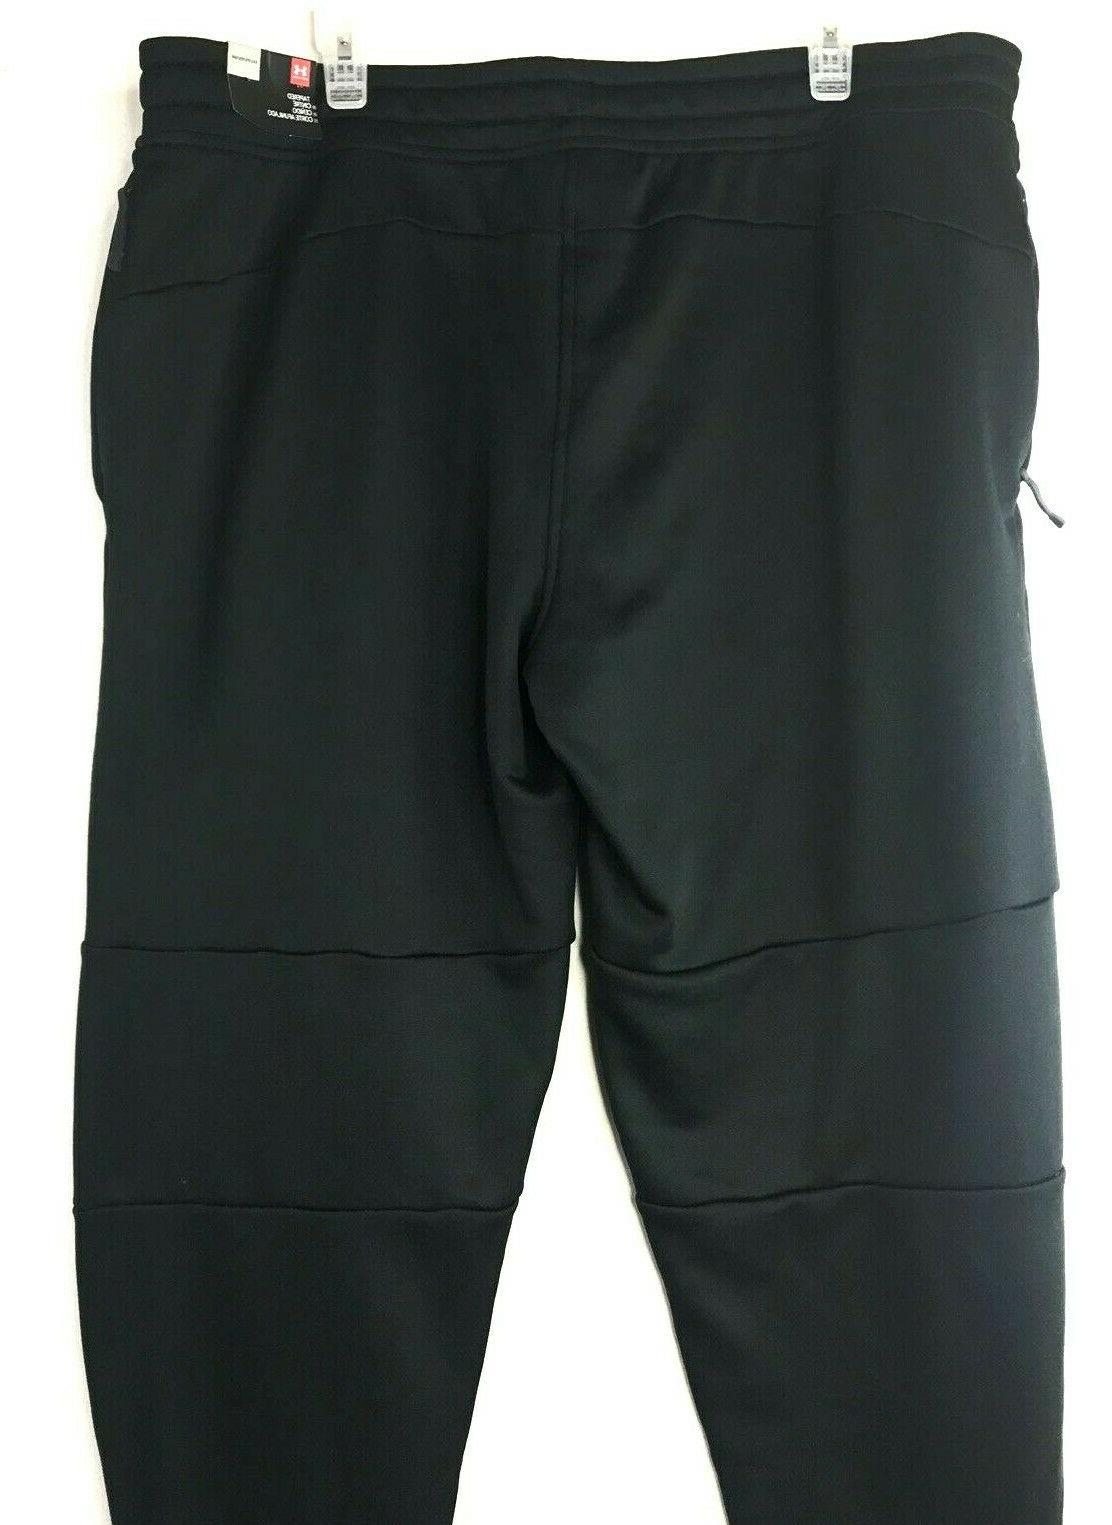 NWT Sweatpants Joggers Tapered Cold Gear Black